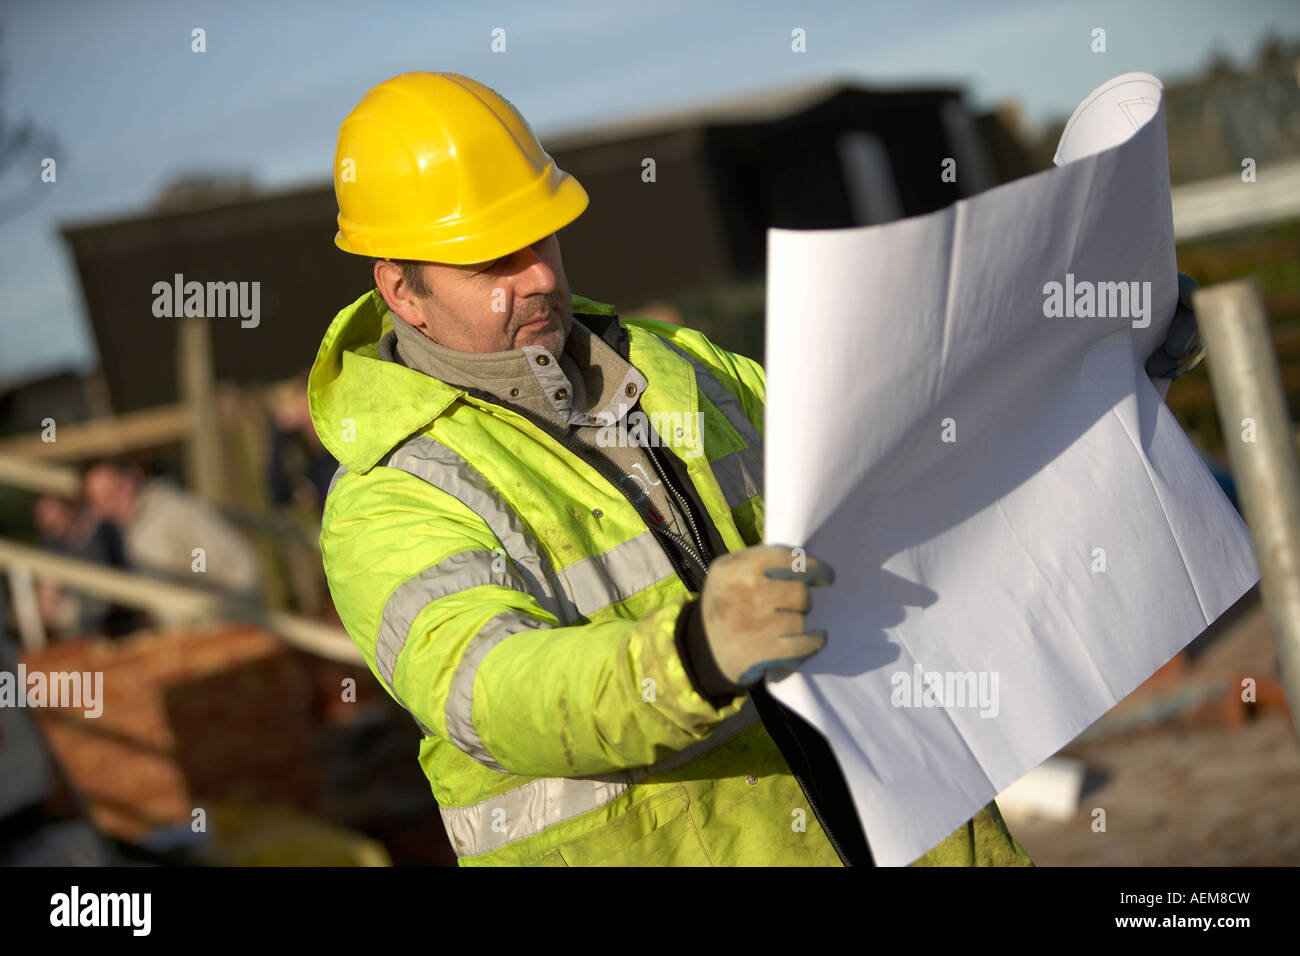 Construction Worker With Hi Vis Clothing And Hard Hat